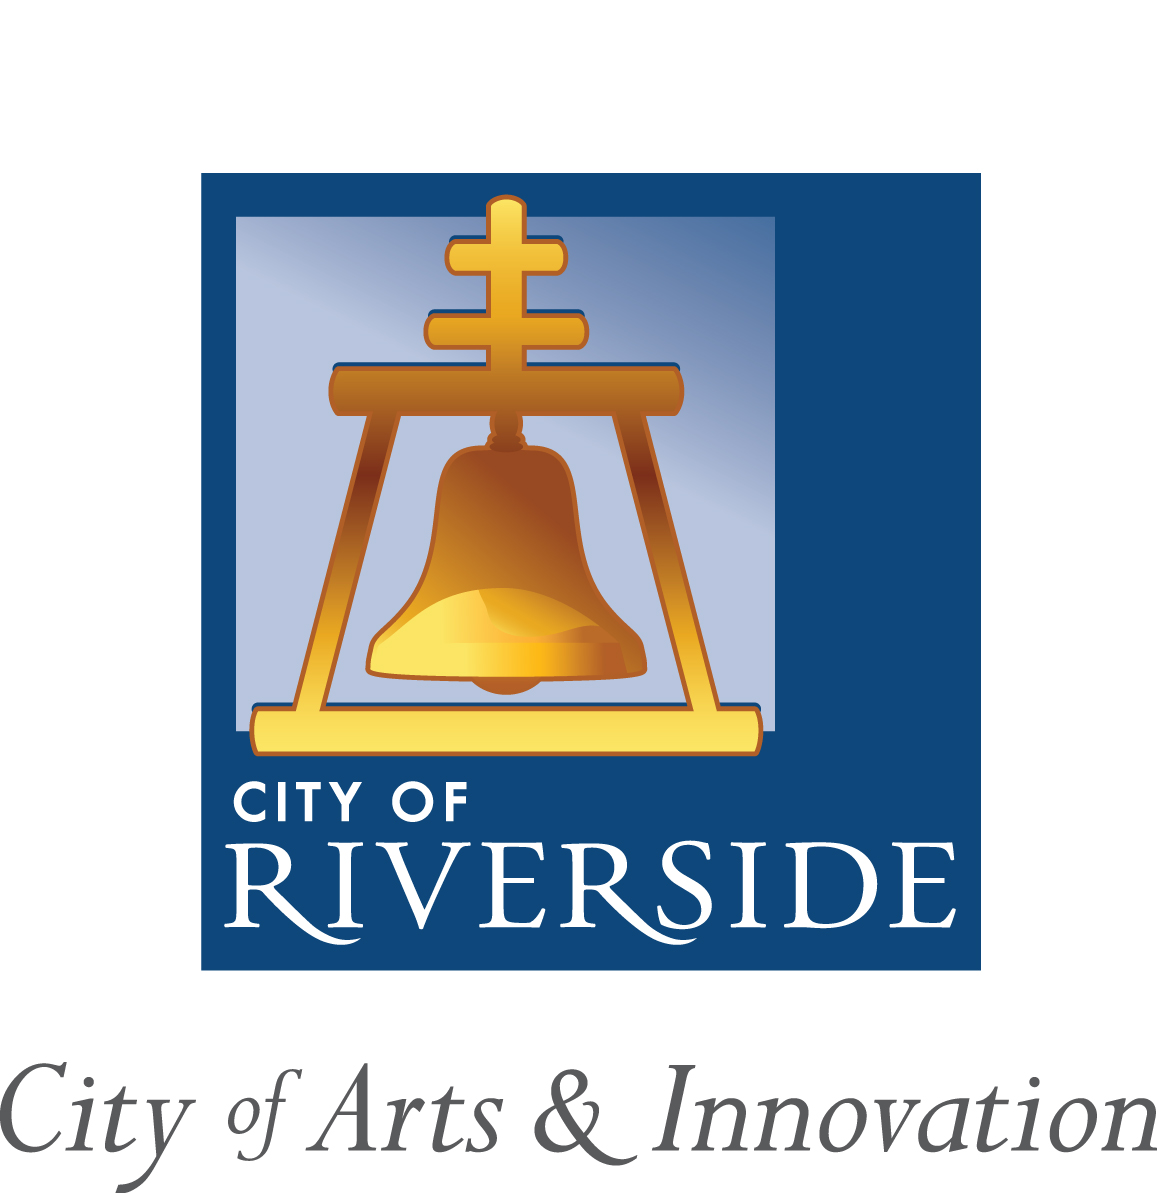 Riverside Children's Theatre is sponsored in part by the City of Riverside